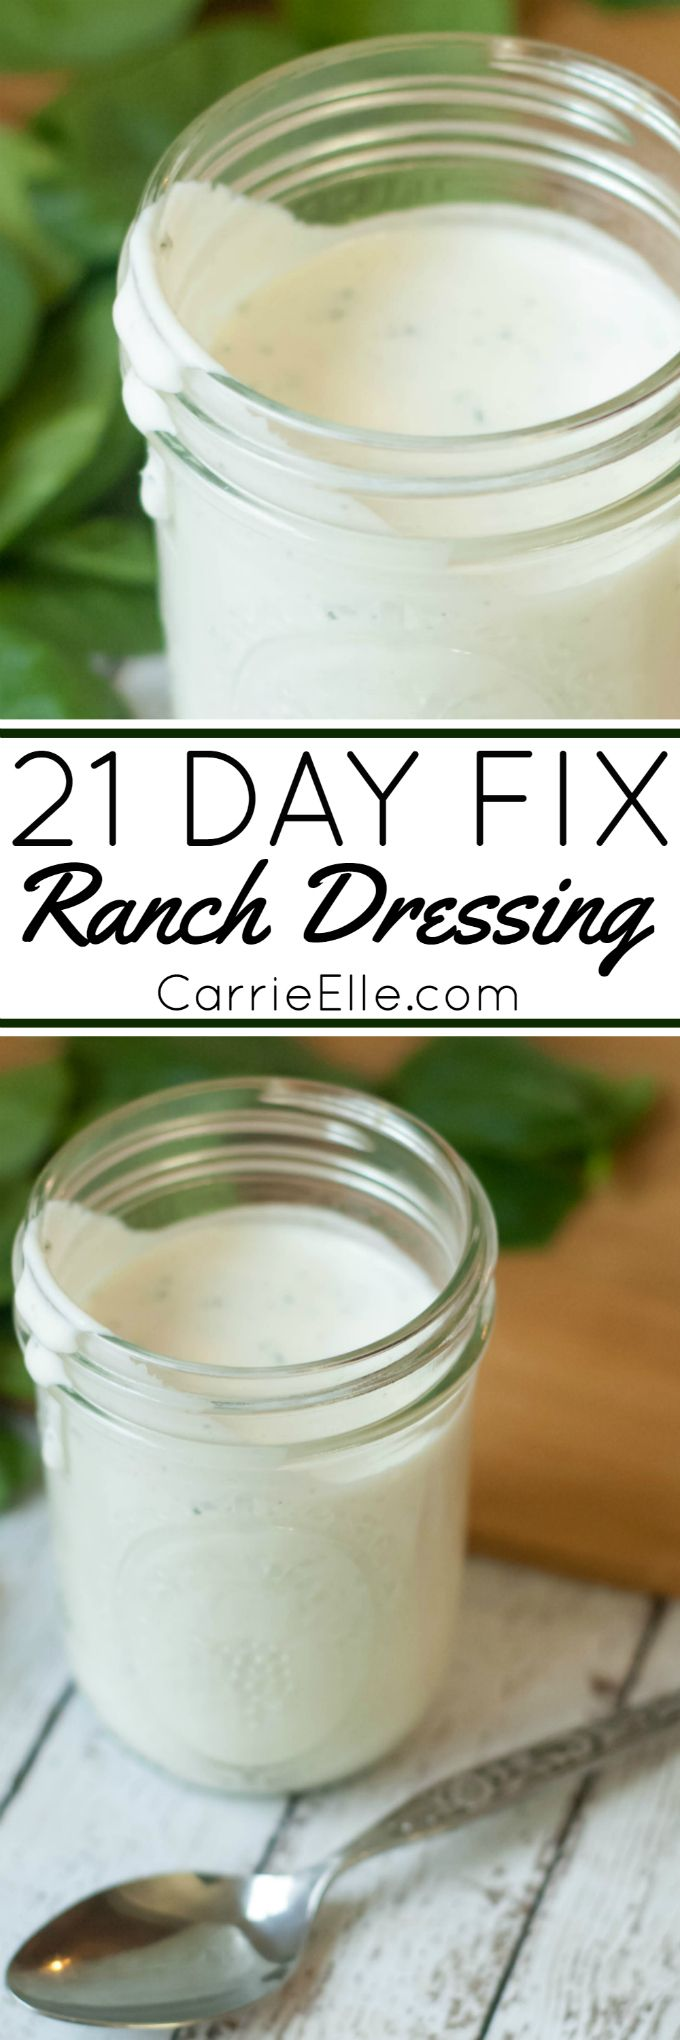 21 Day Fix Ranch Dressing (it's so good!)